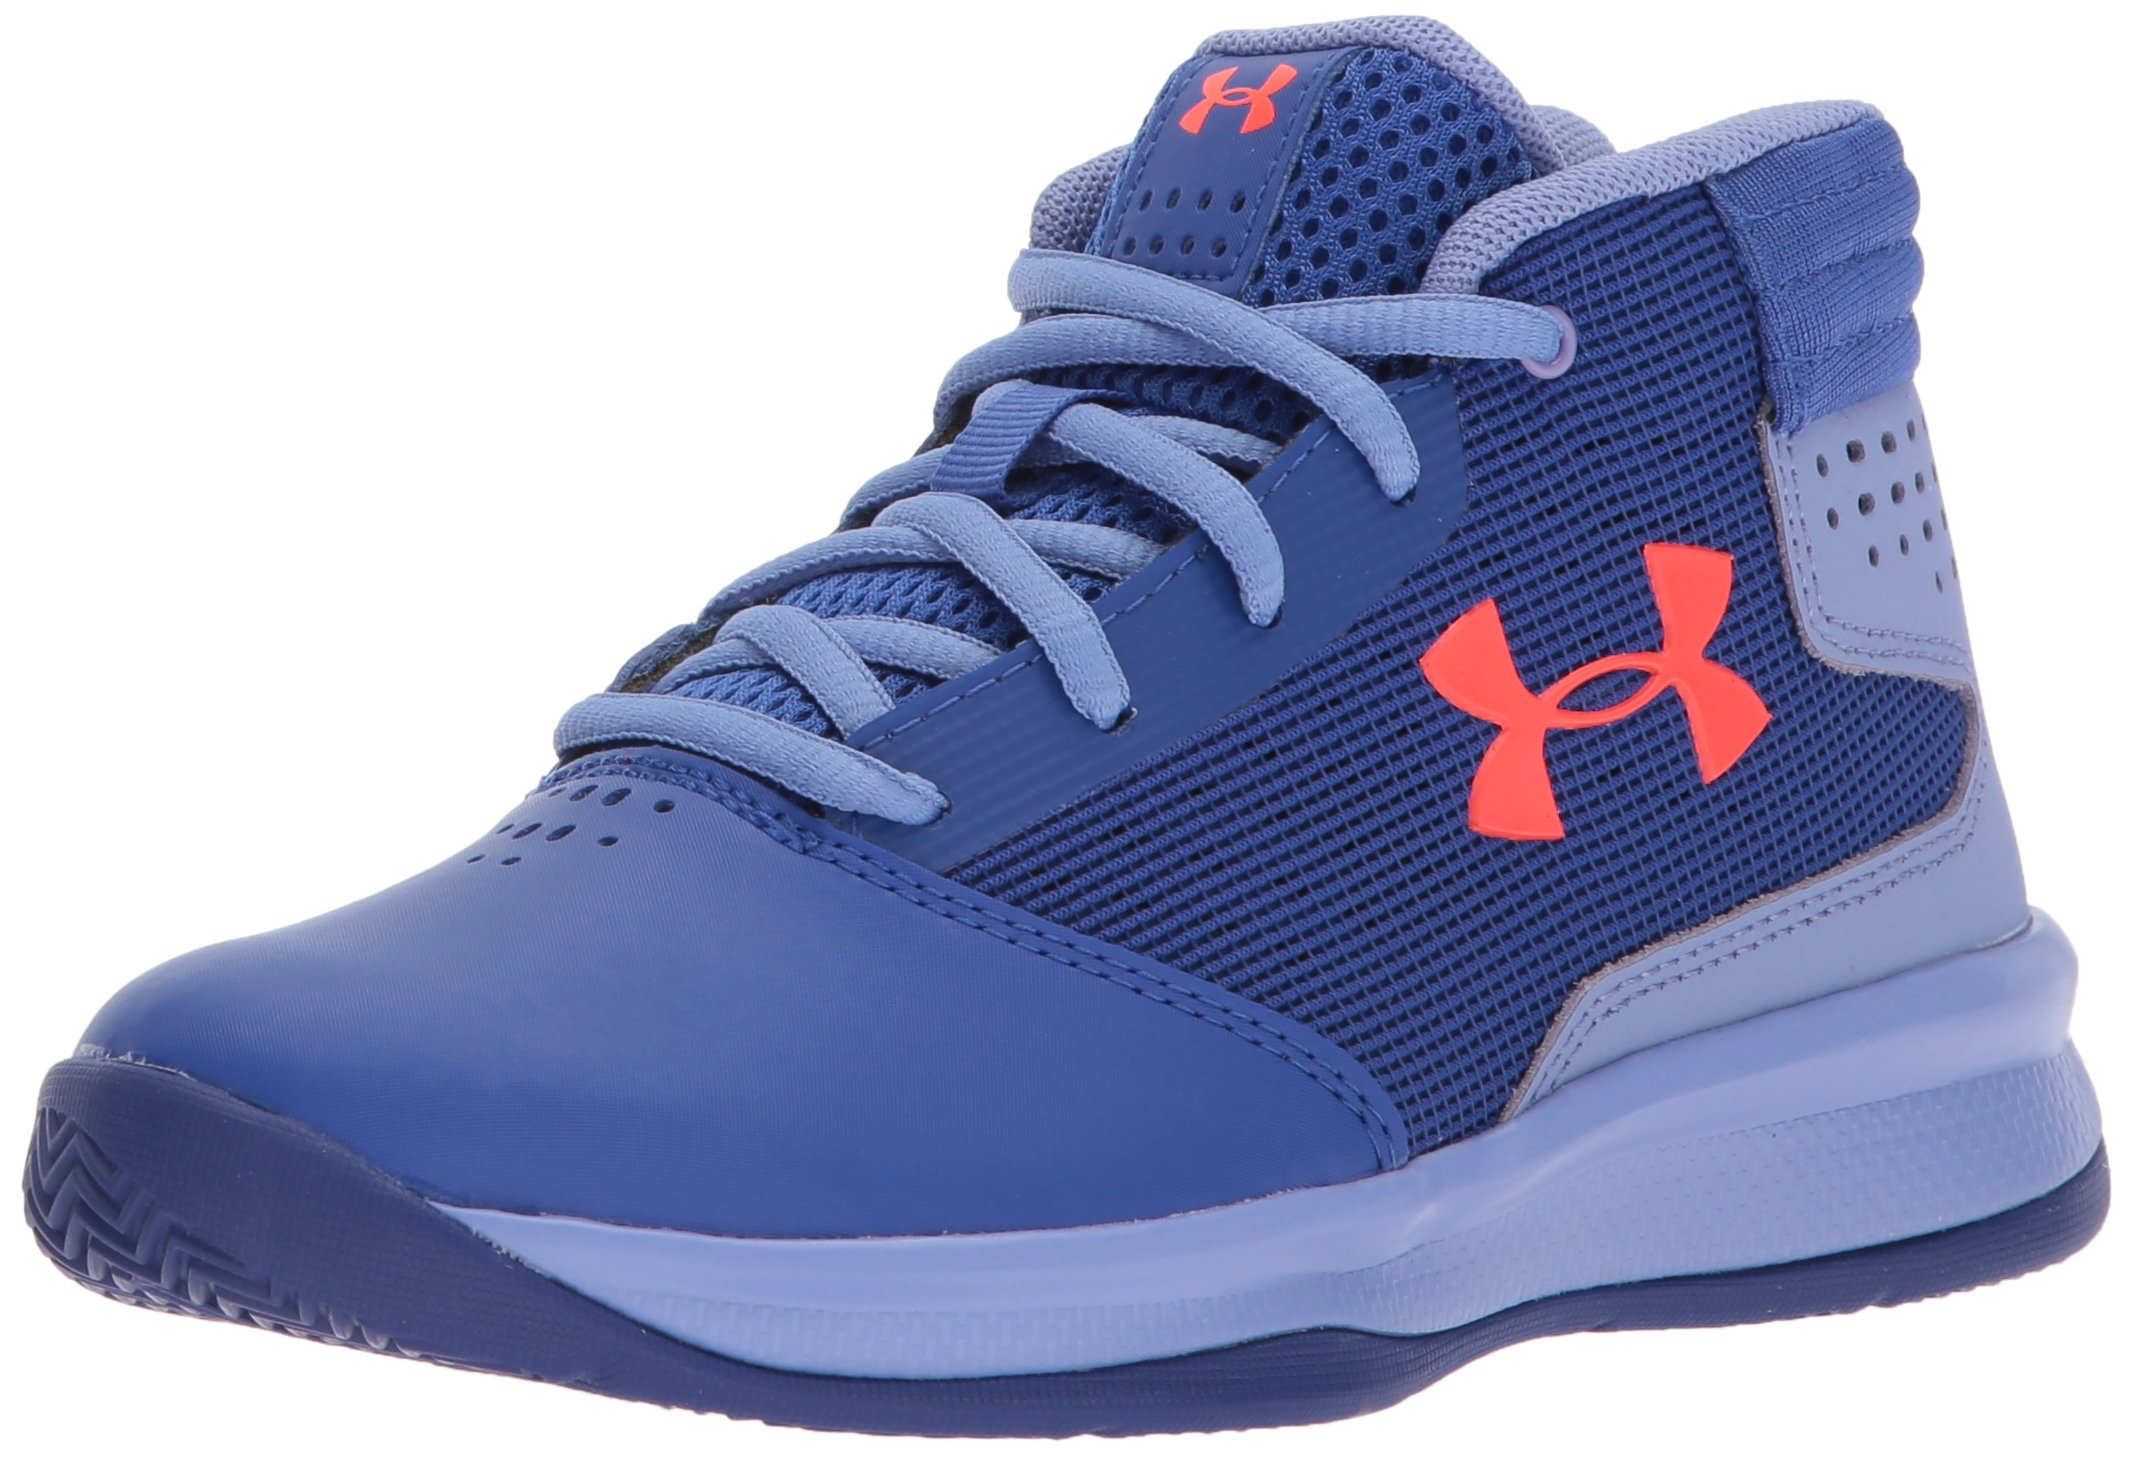 a2b1f65838ba Under Armour Kids  Boys  Pre School Jet 2017 Running Shoe product image